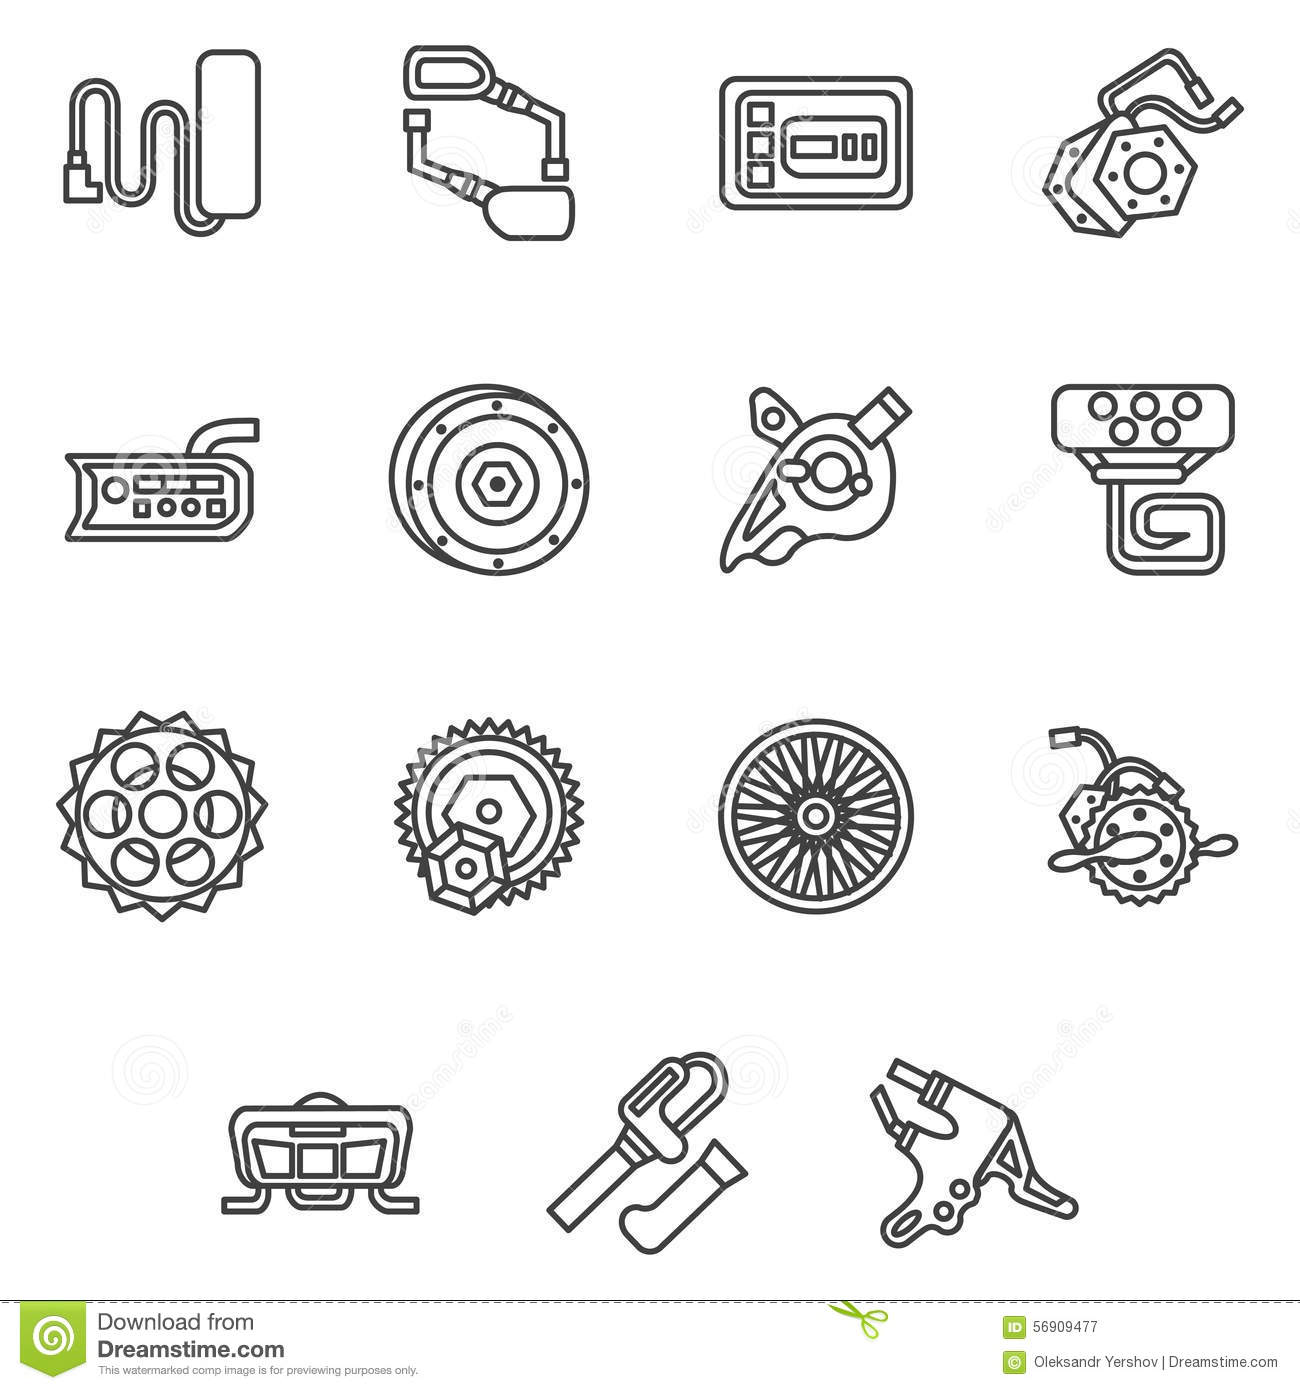 simple line icons for e-bike parts stock image